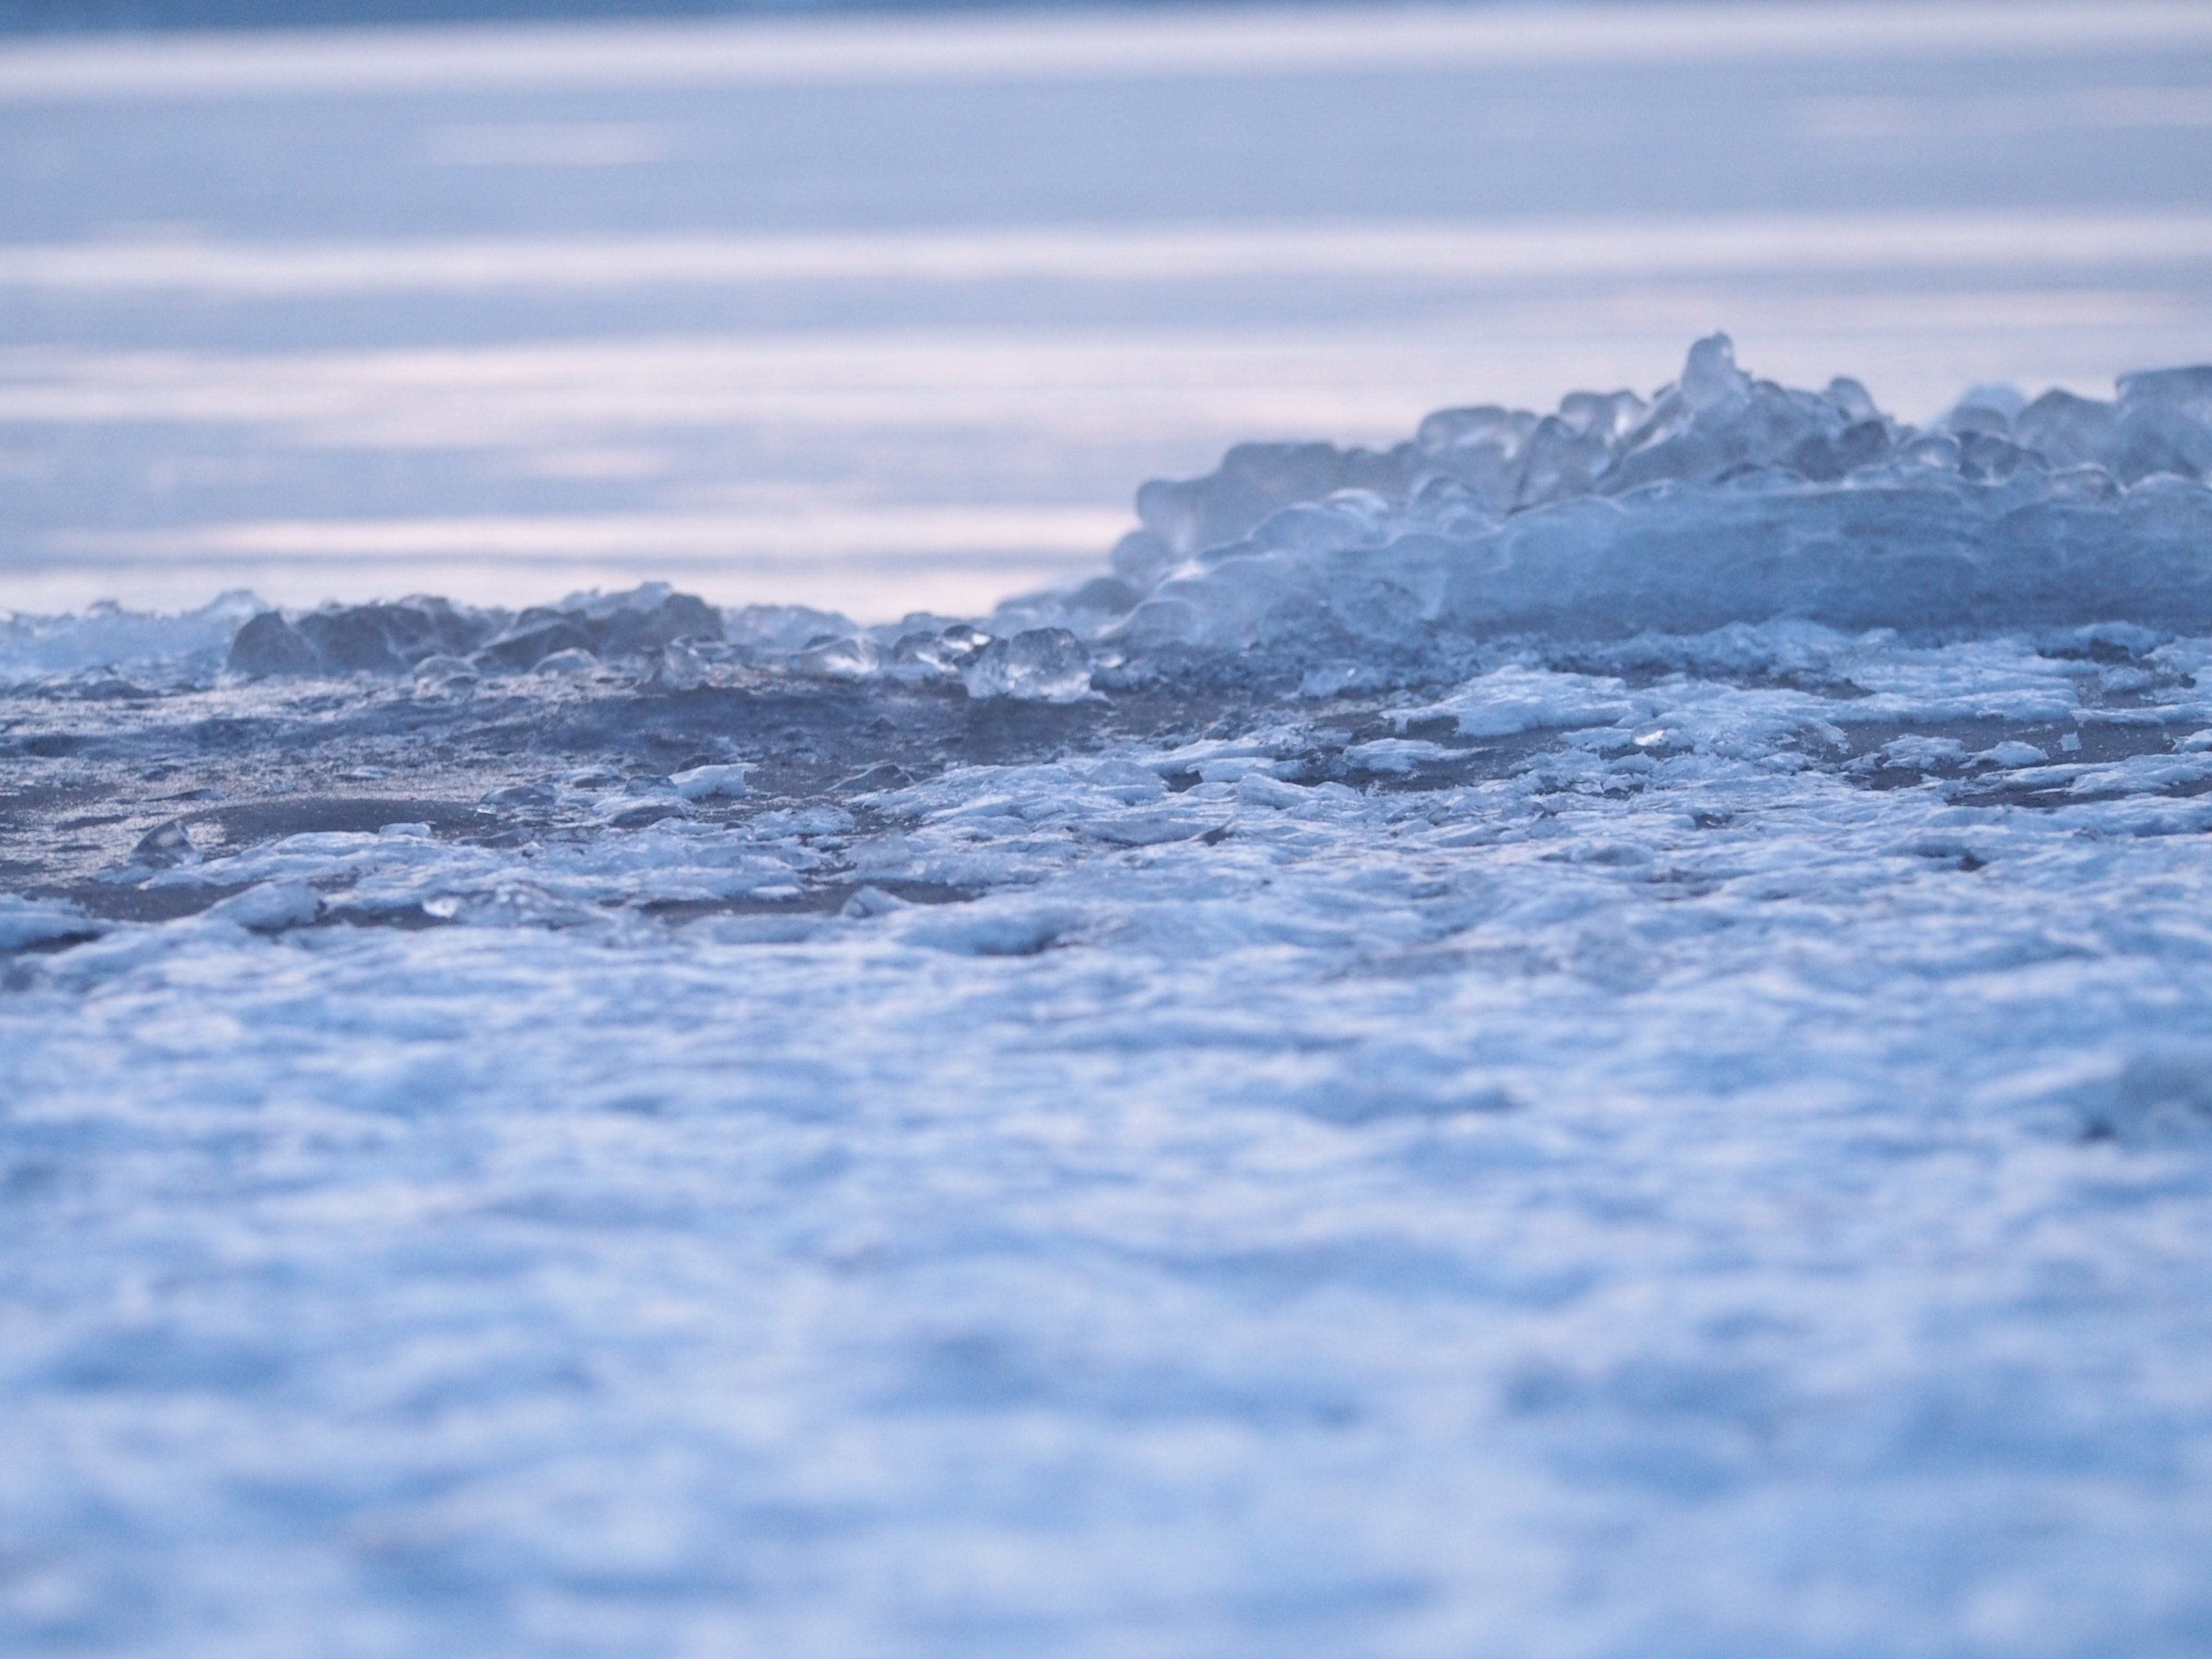 Free stock photo of # ice, #outdoorchallenge, #sea, #water